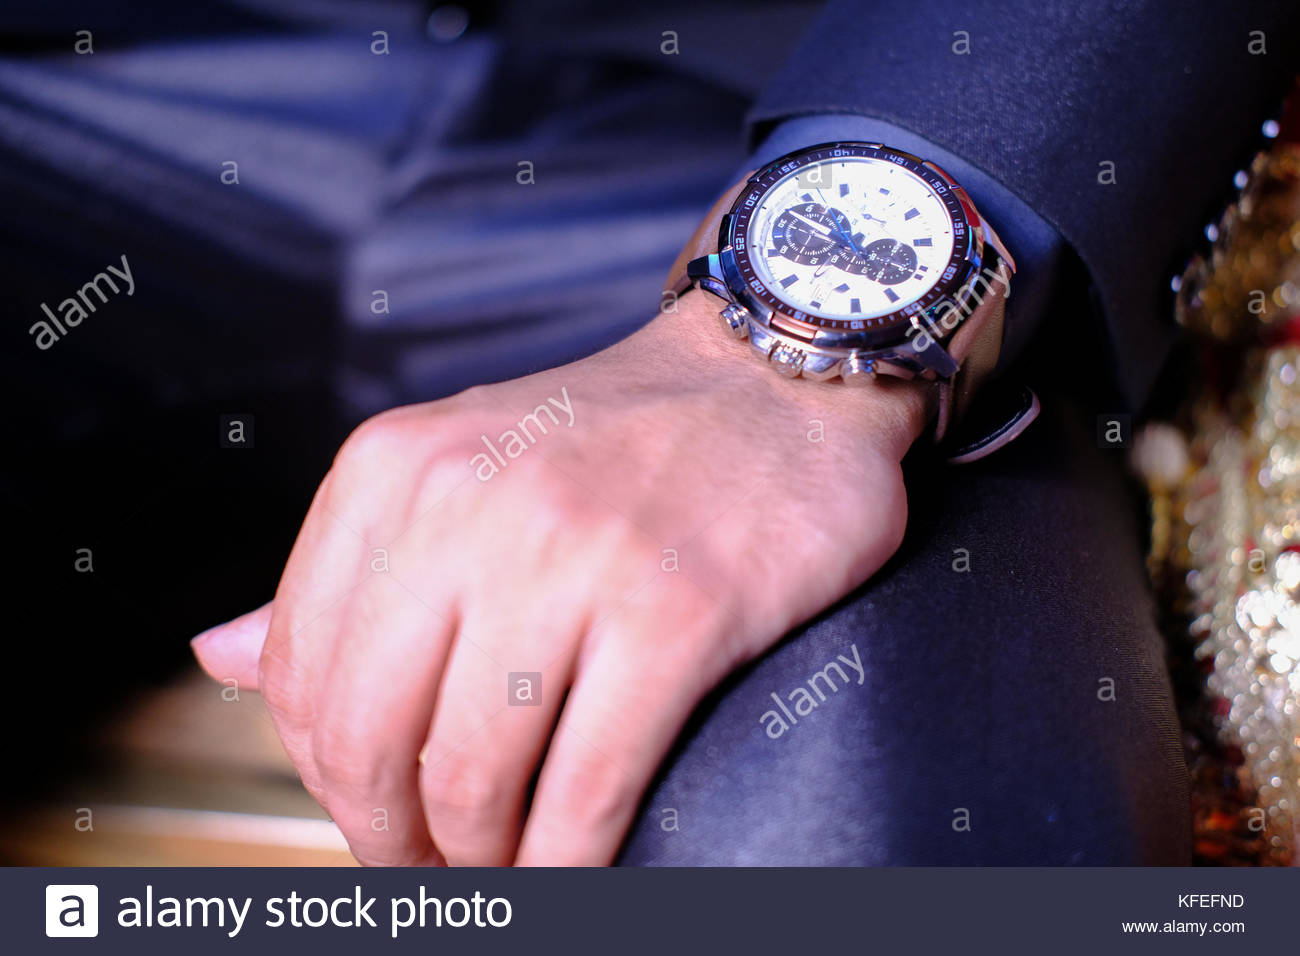 Man with watch thinking. - Stock Image